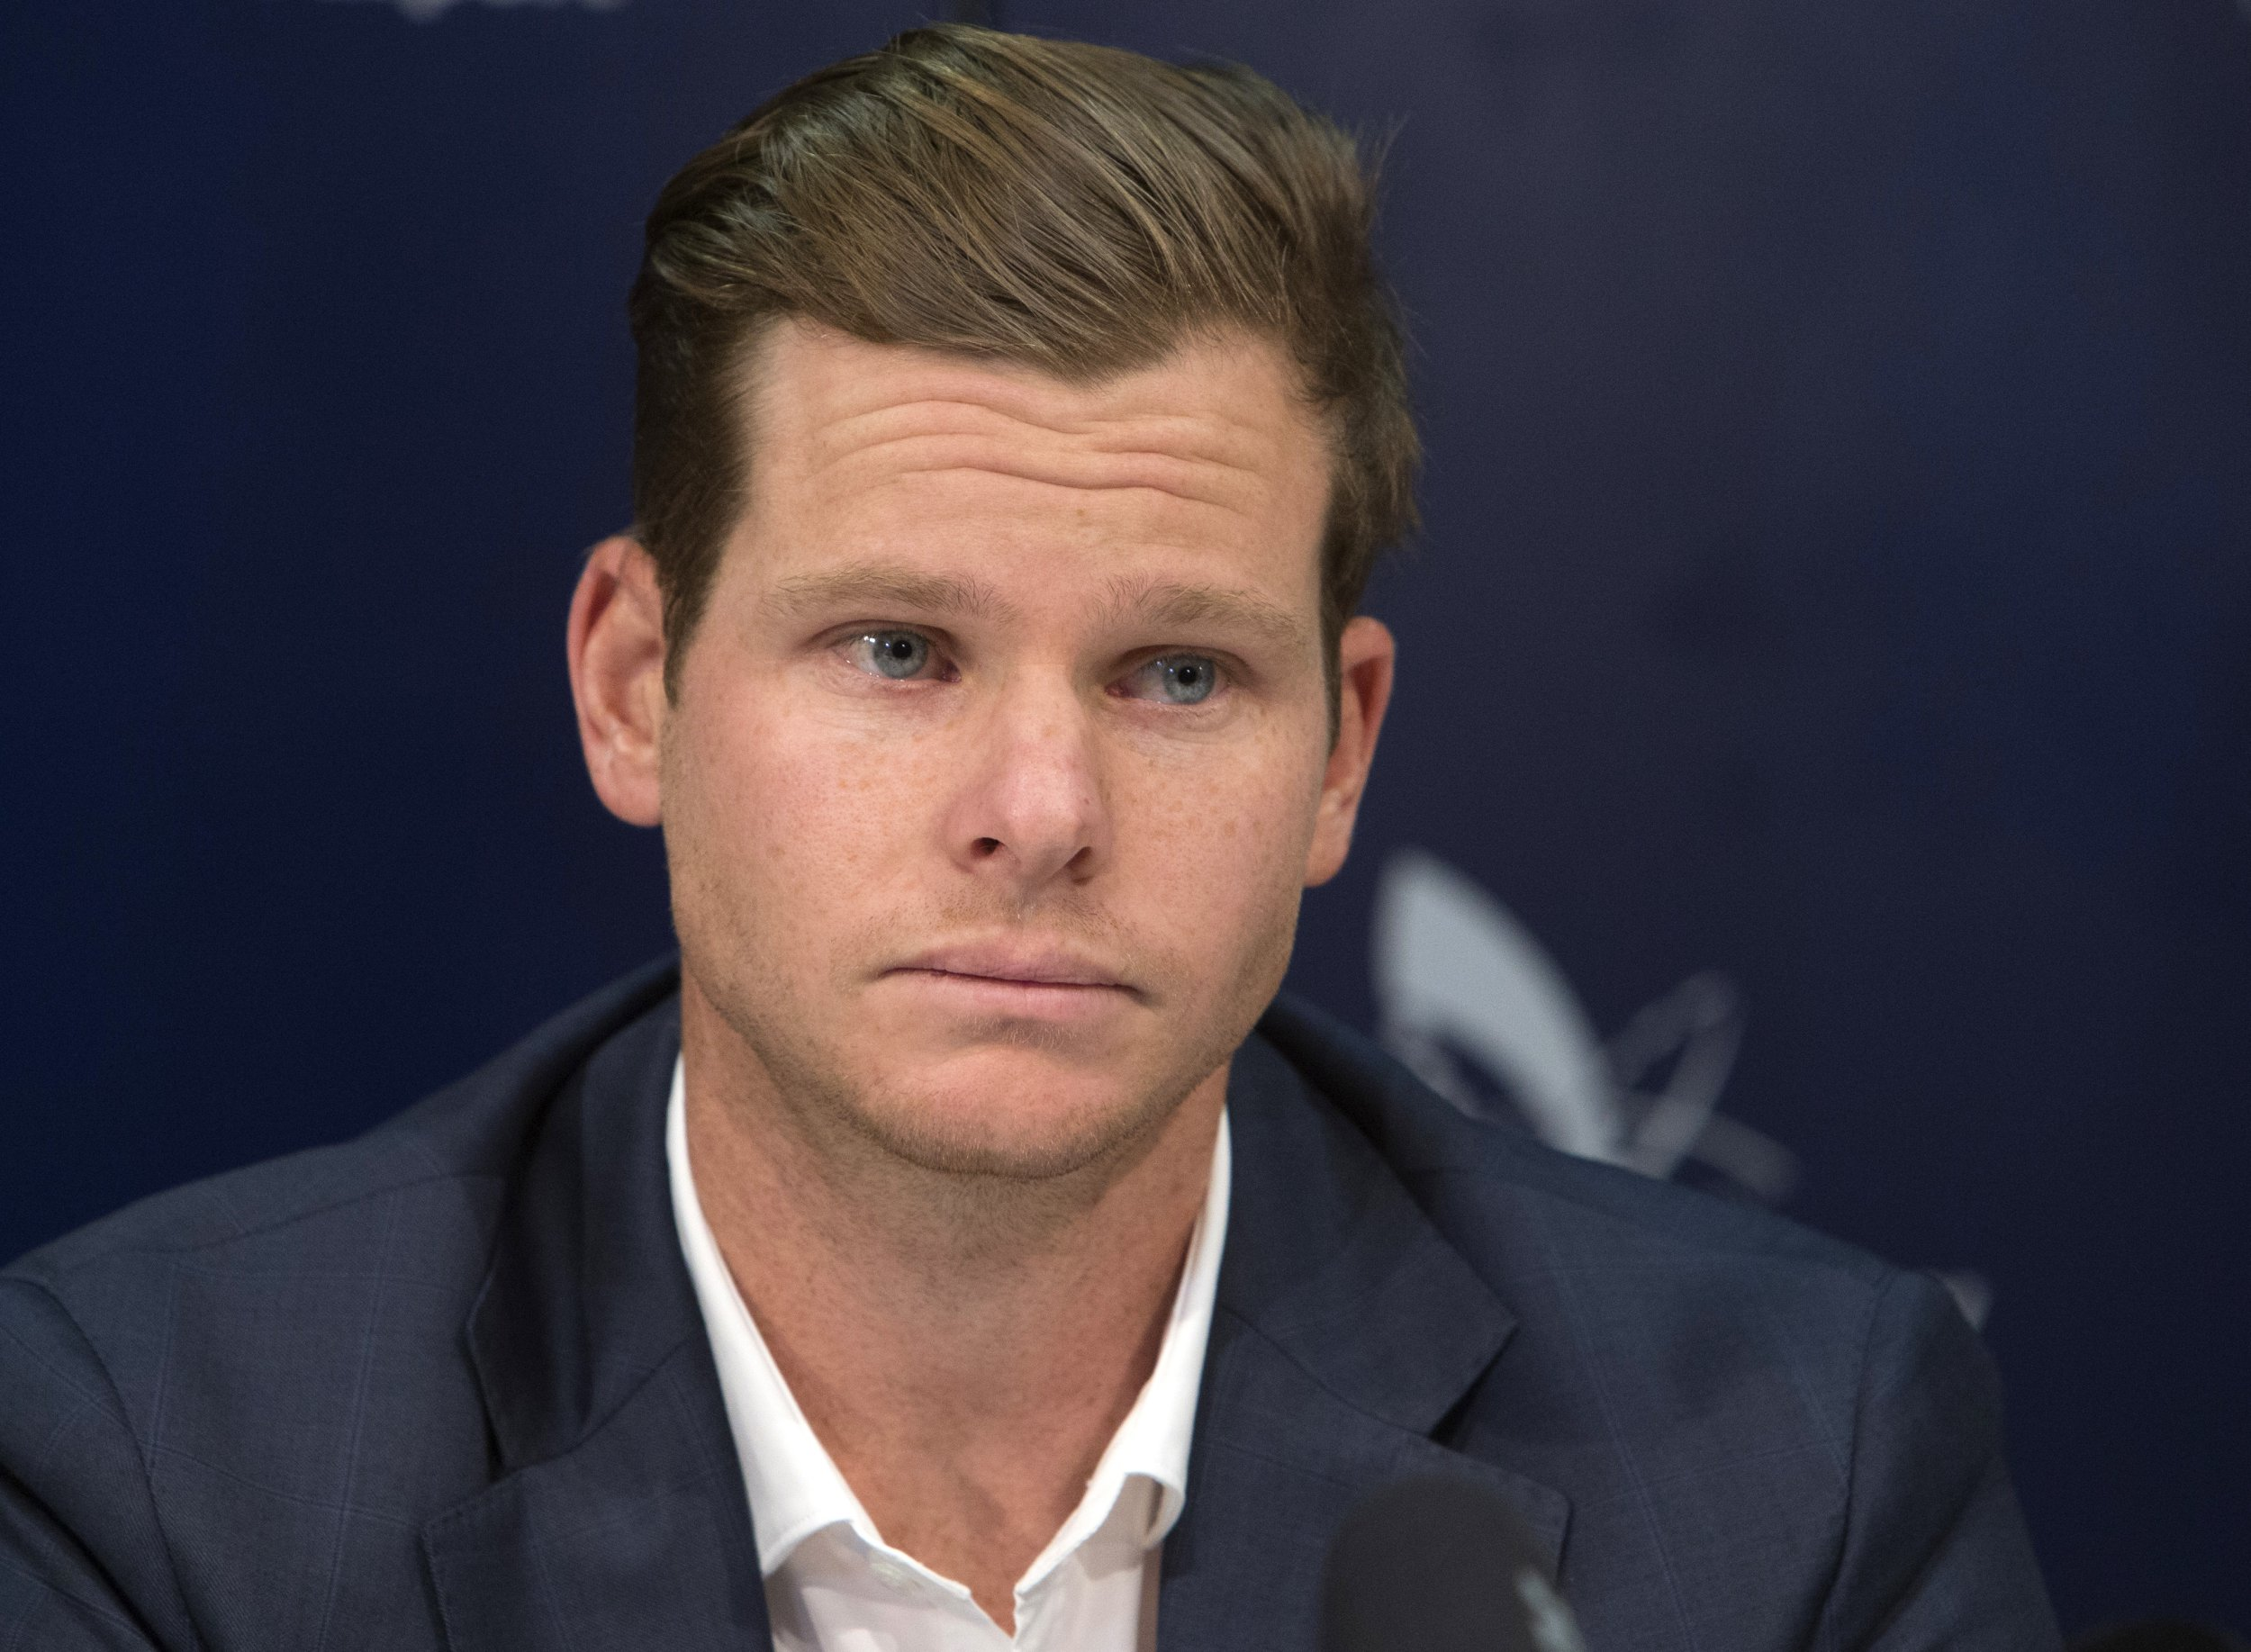 Former Australian cricket captain Steve Smith speaks to the media in Sydney, Thursday, March 29, 2018, after being sent home from South Africa following a ball tampering scandal. Smith and vice-captain David Warner were banned for 12 months while young batsman Cameron Bancroft received 9 months after an investigation into the Australian cricket team's cheating scandal identified Warner as the instigator of the ball tampering plan that unraveled in South Africa. (AP Photo/Steve Christo)